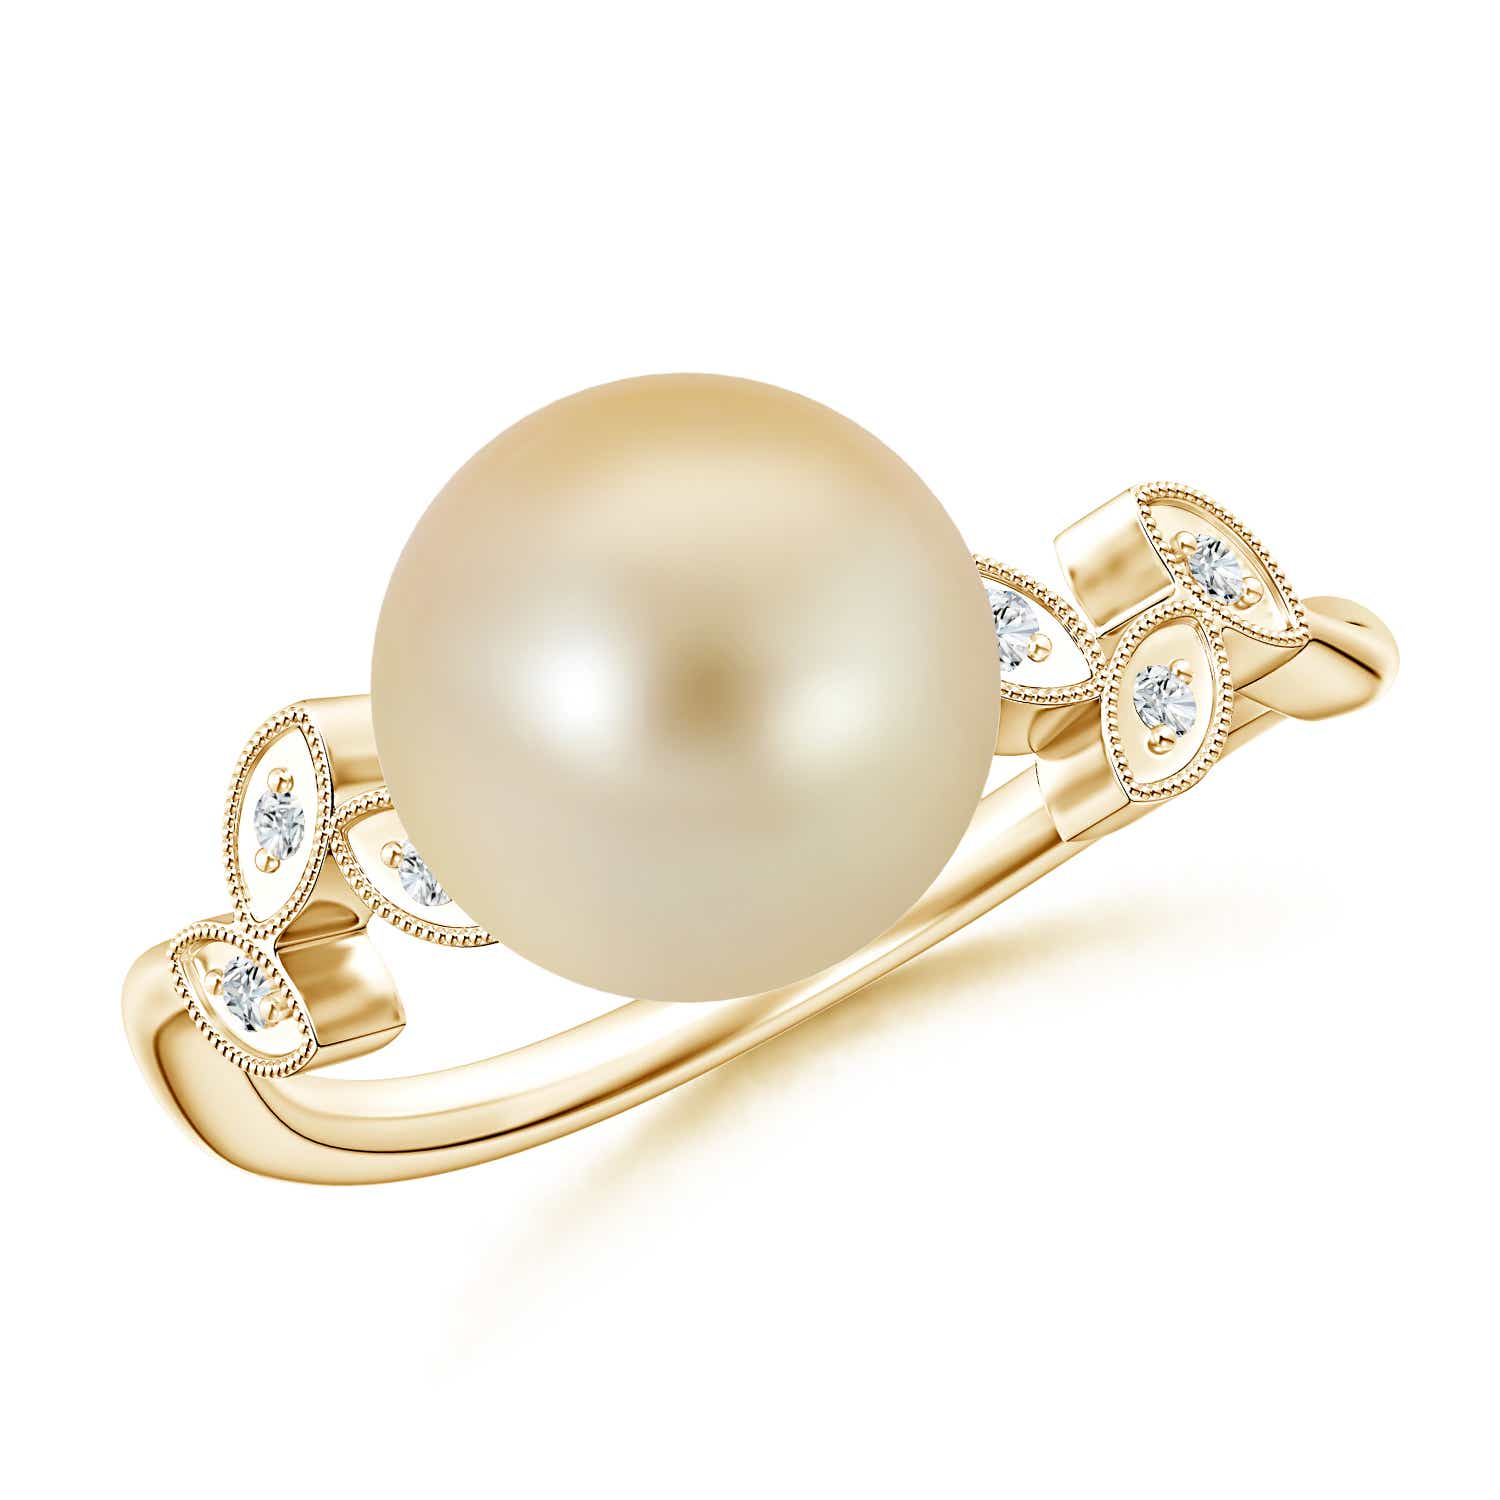 Angara Golden South Sea Cultured Pearl Bypass Ring with Trio Diamond oLpFlGfN